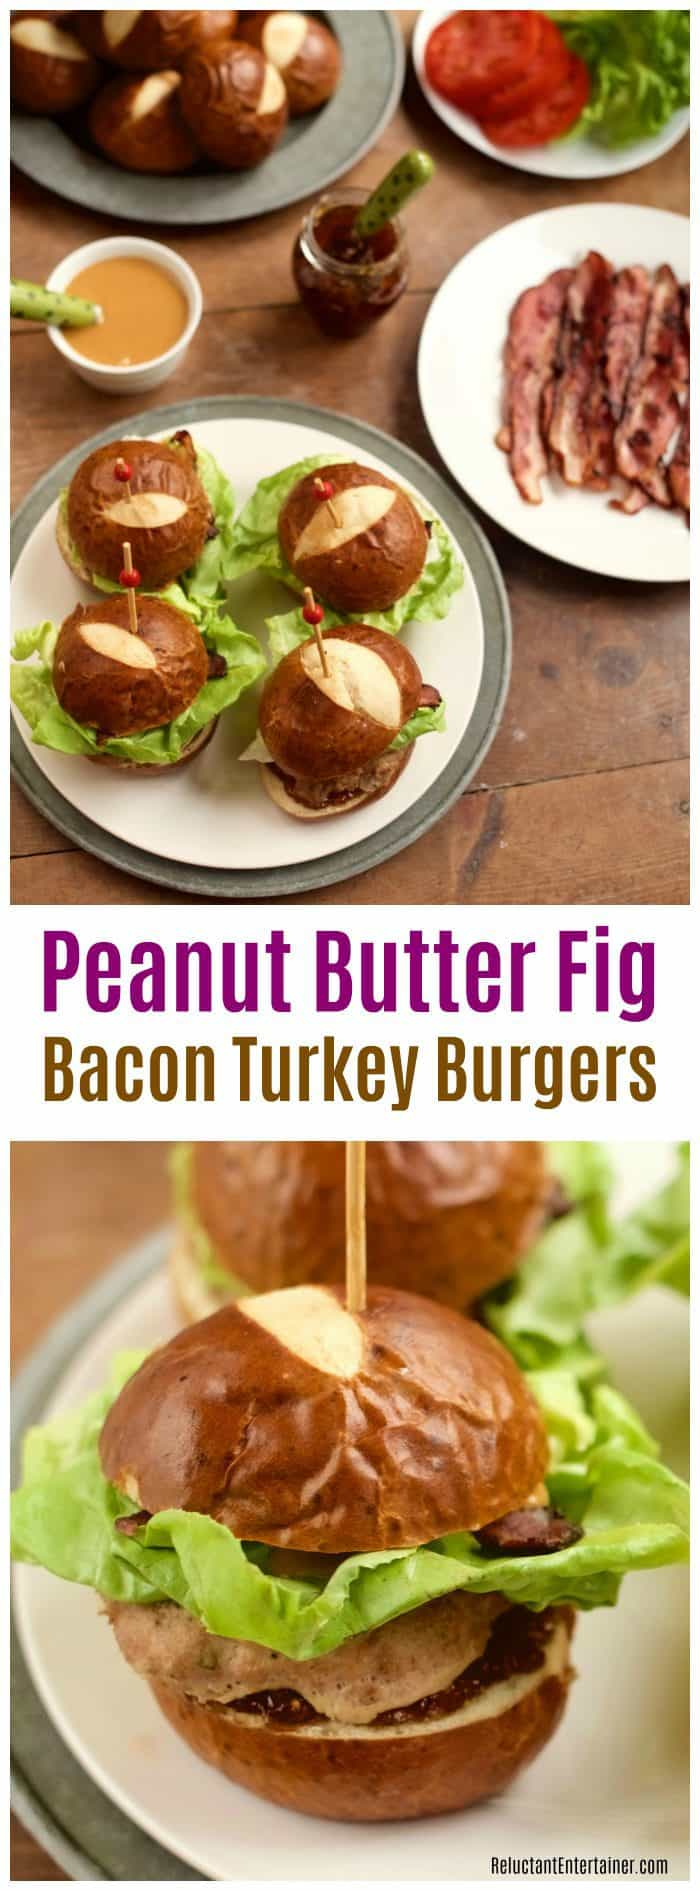 Peanut Butter Fig Bacon Turkey Burgers